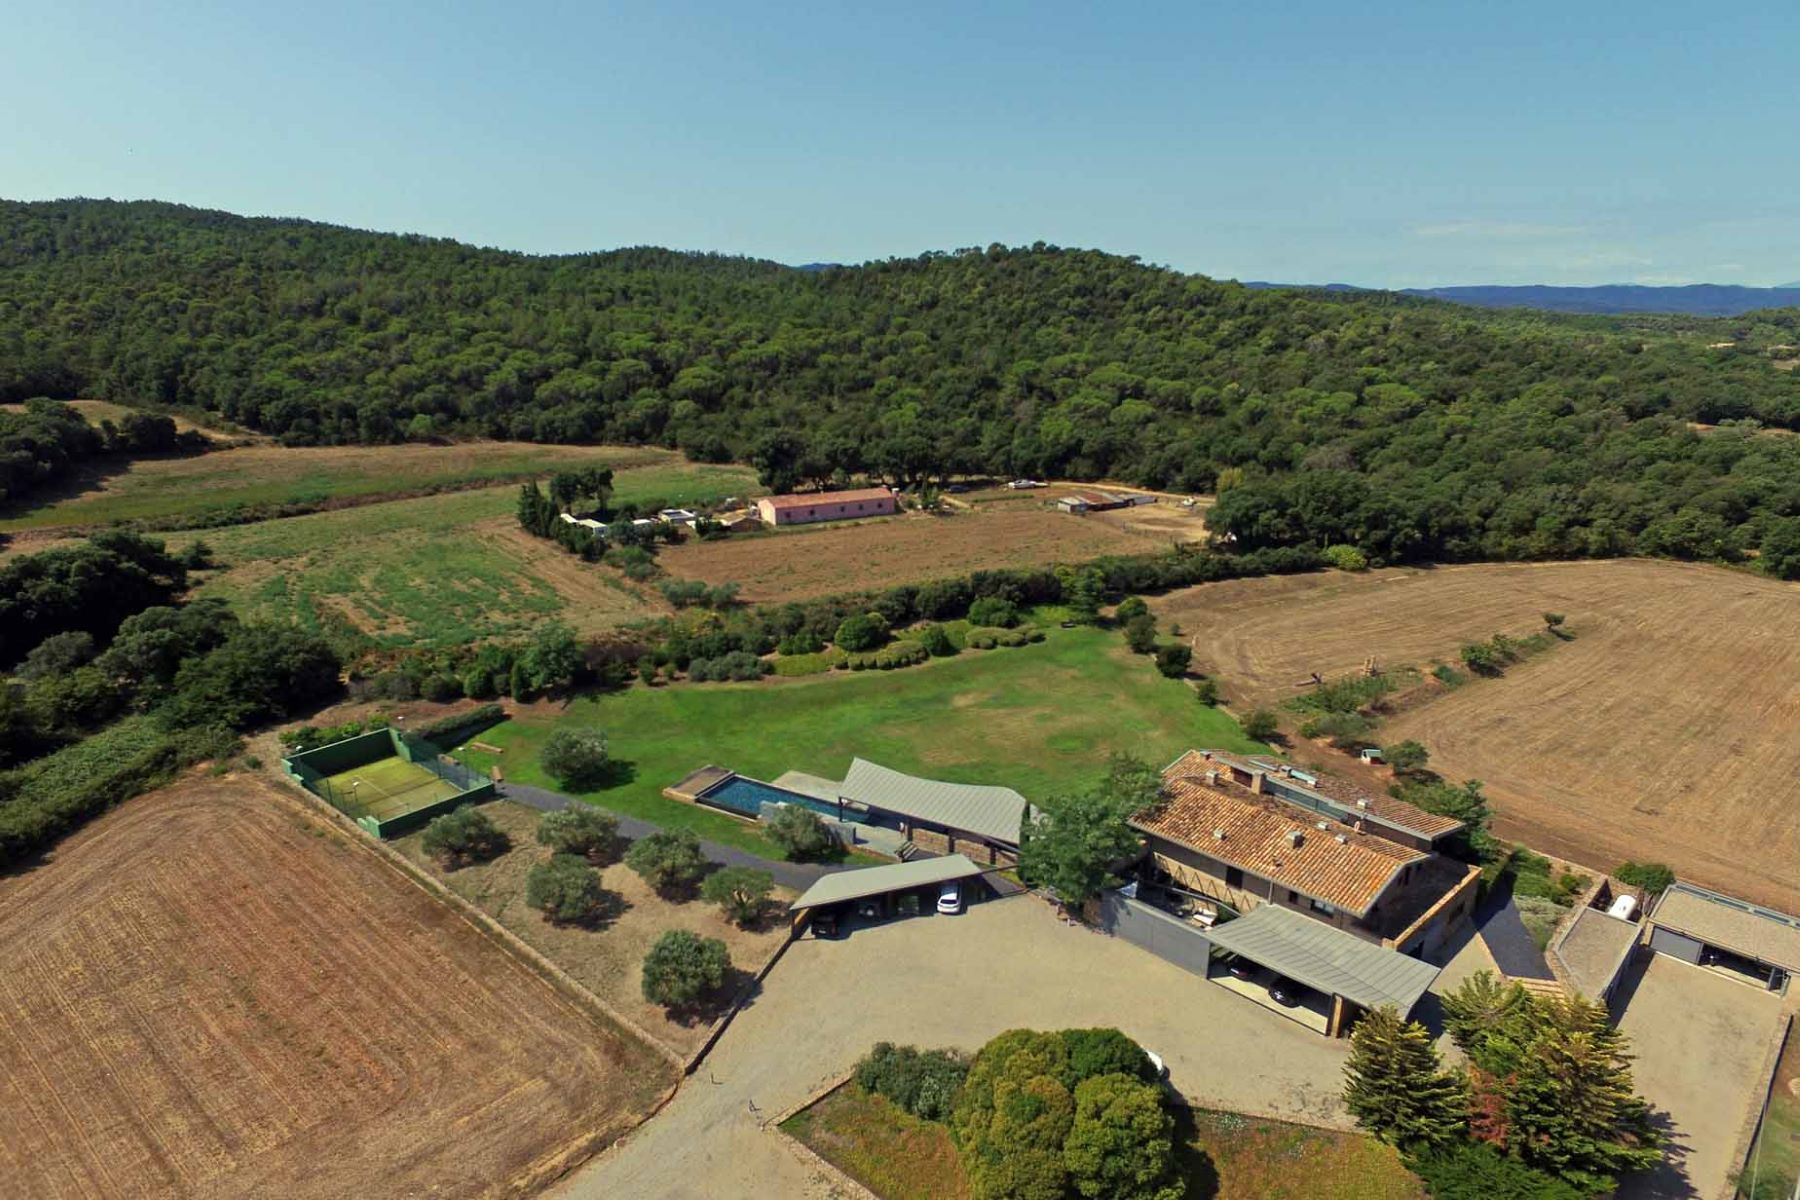 Single Family Home for Sale at Fantastic farmhouse in the heart of the Costa Brava Other Spain, Other Areas In Spain 17001 Spain